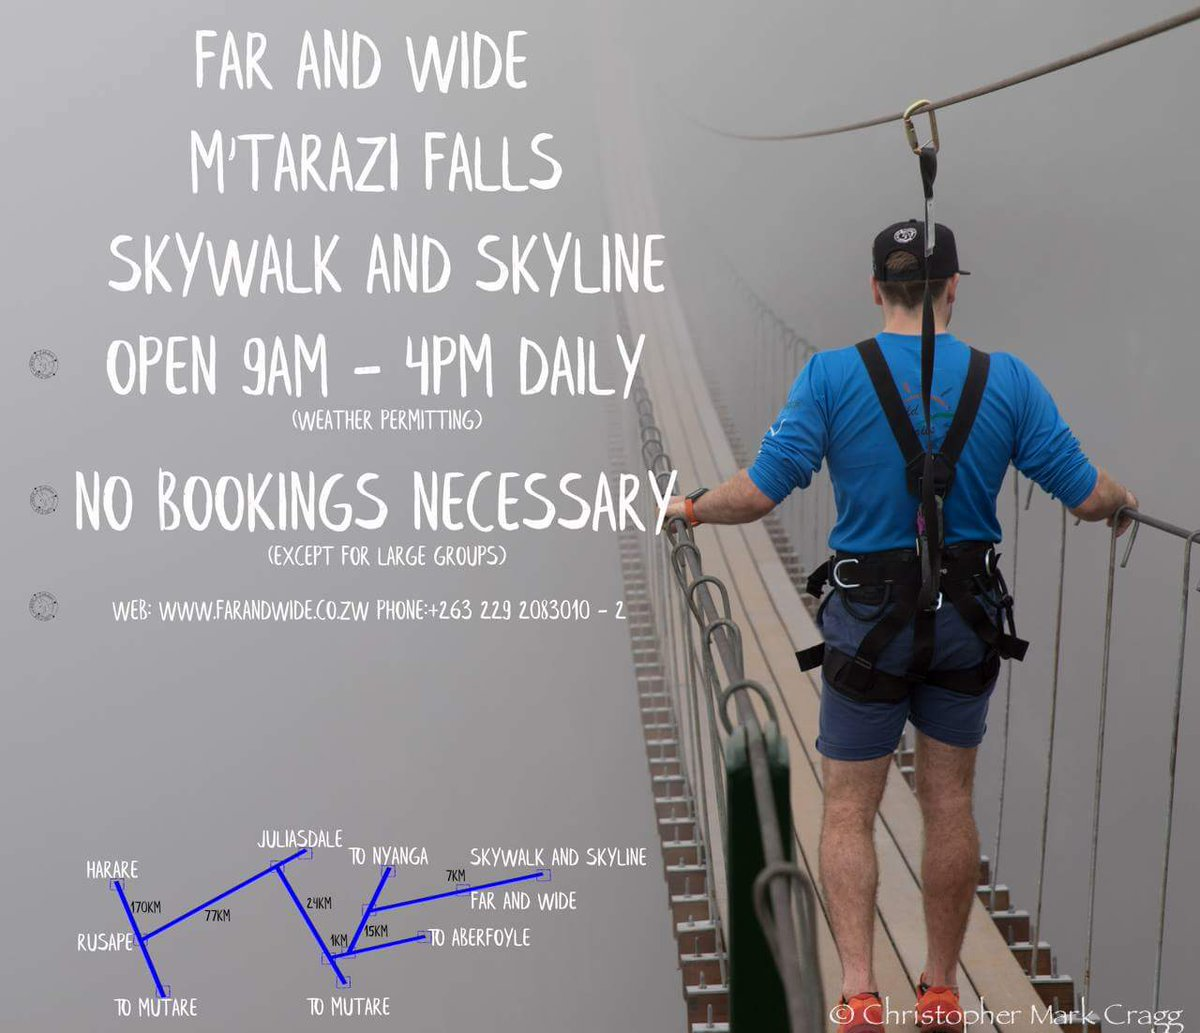 Far and wide Mutarazi Falls  skywalk skyline #MutaraziAdventures